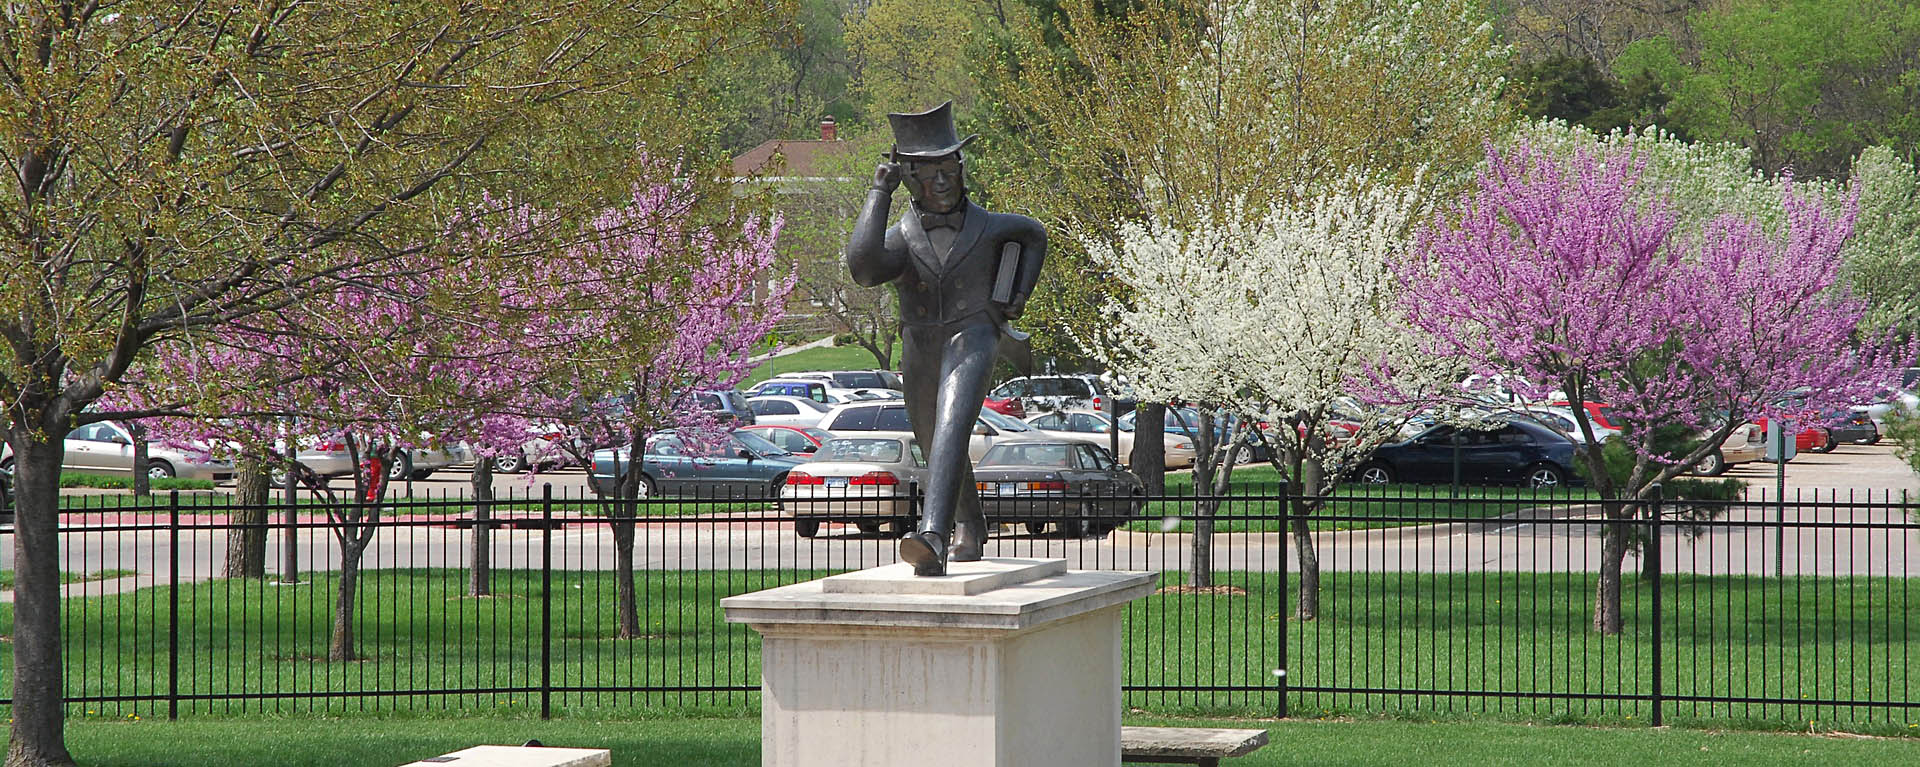 Ichabod statue on campus with spring trees